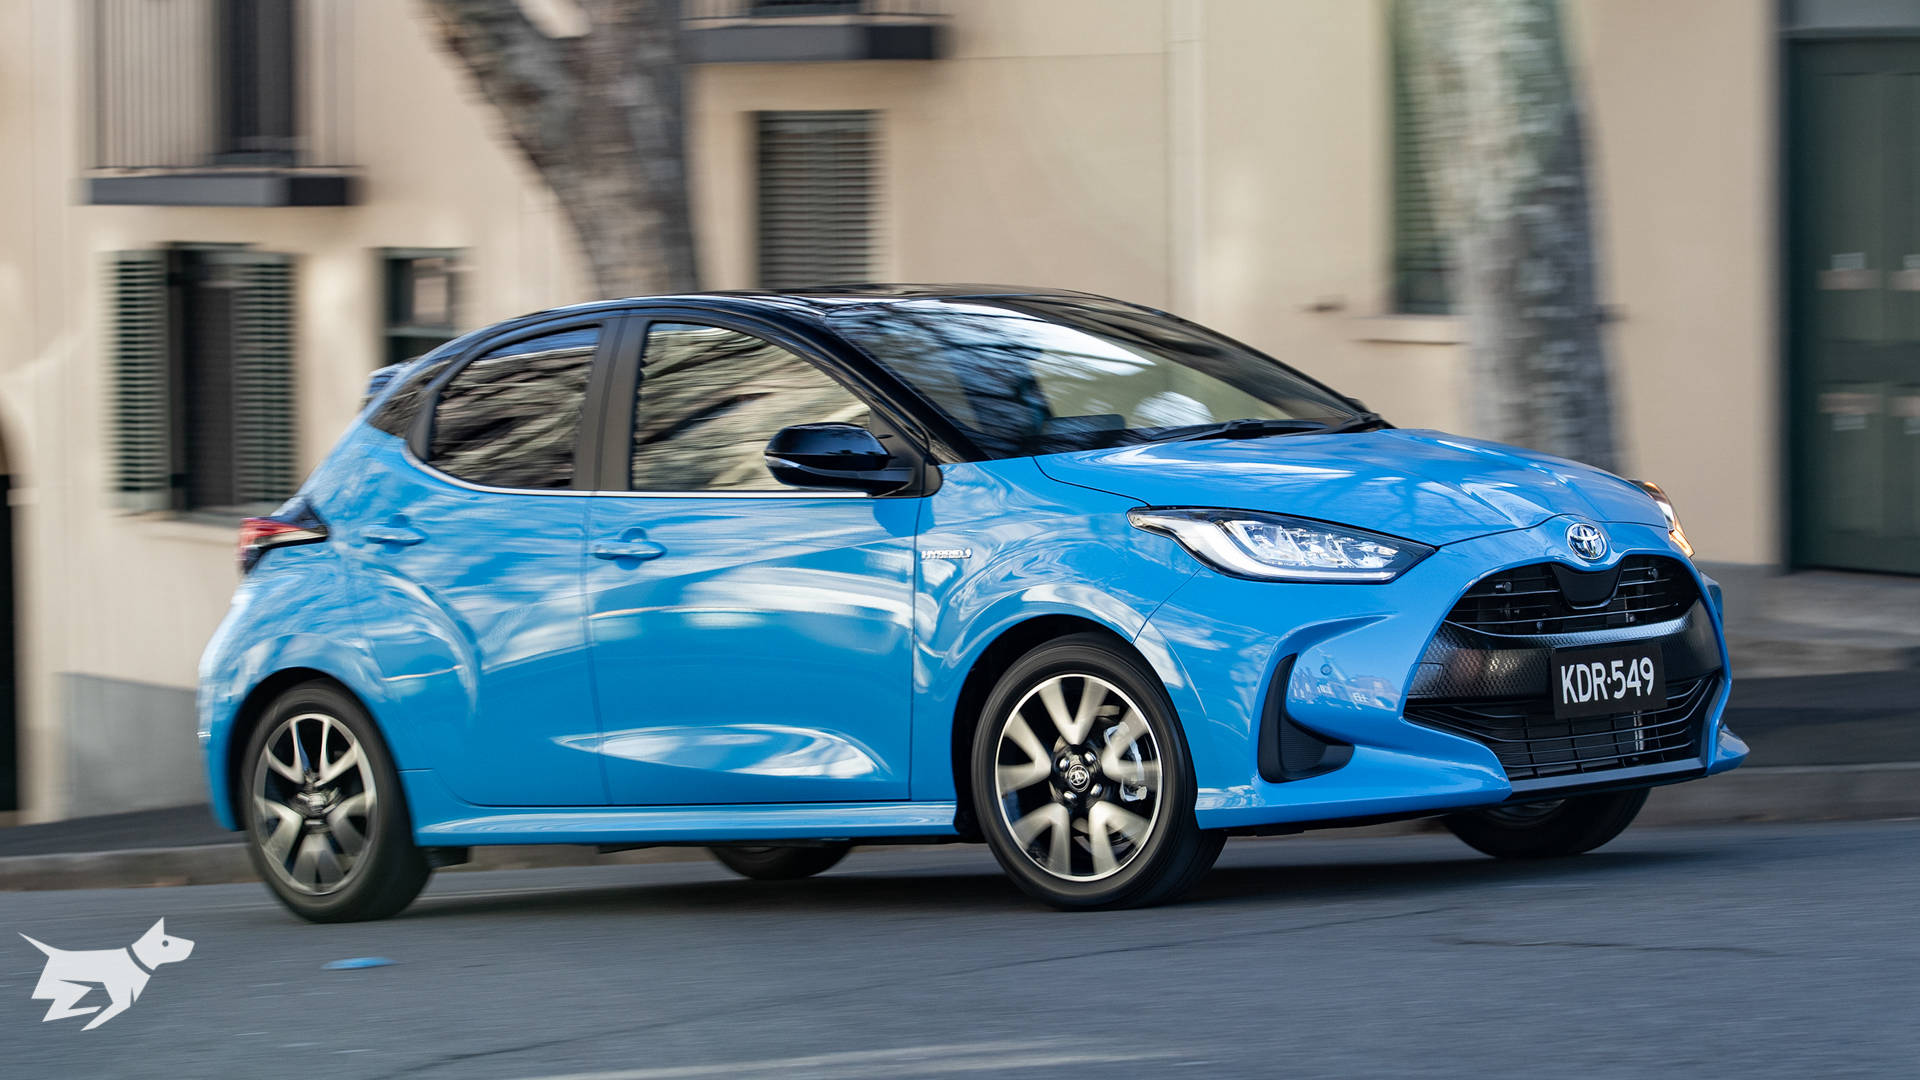 The 2021 Toyota Yaris ZR shown here in blue